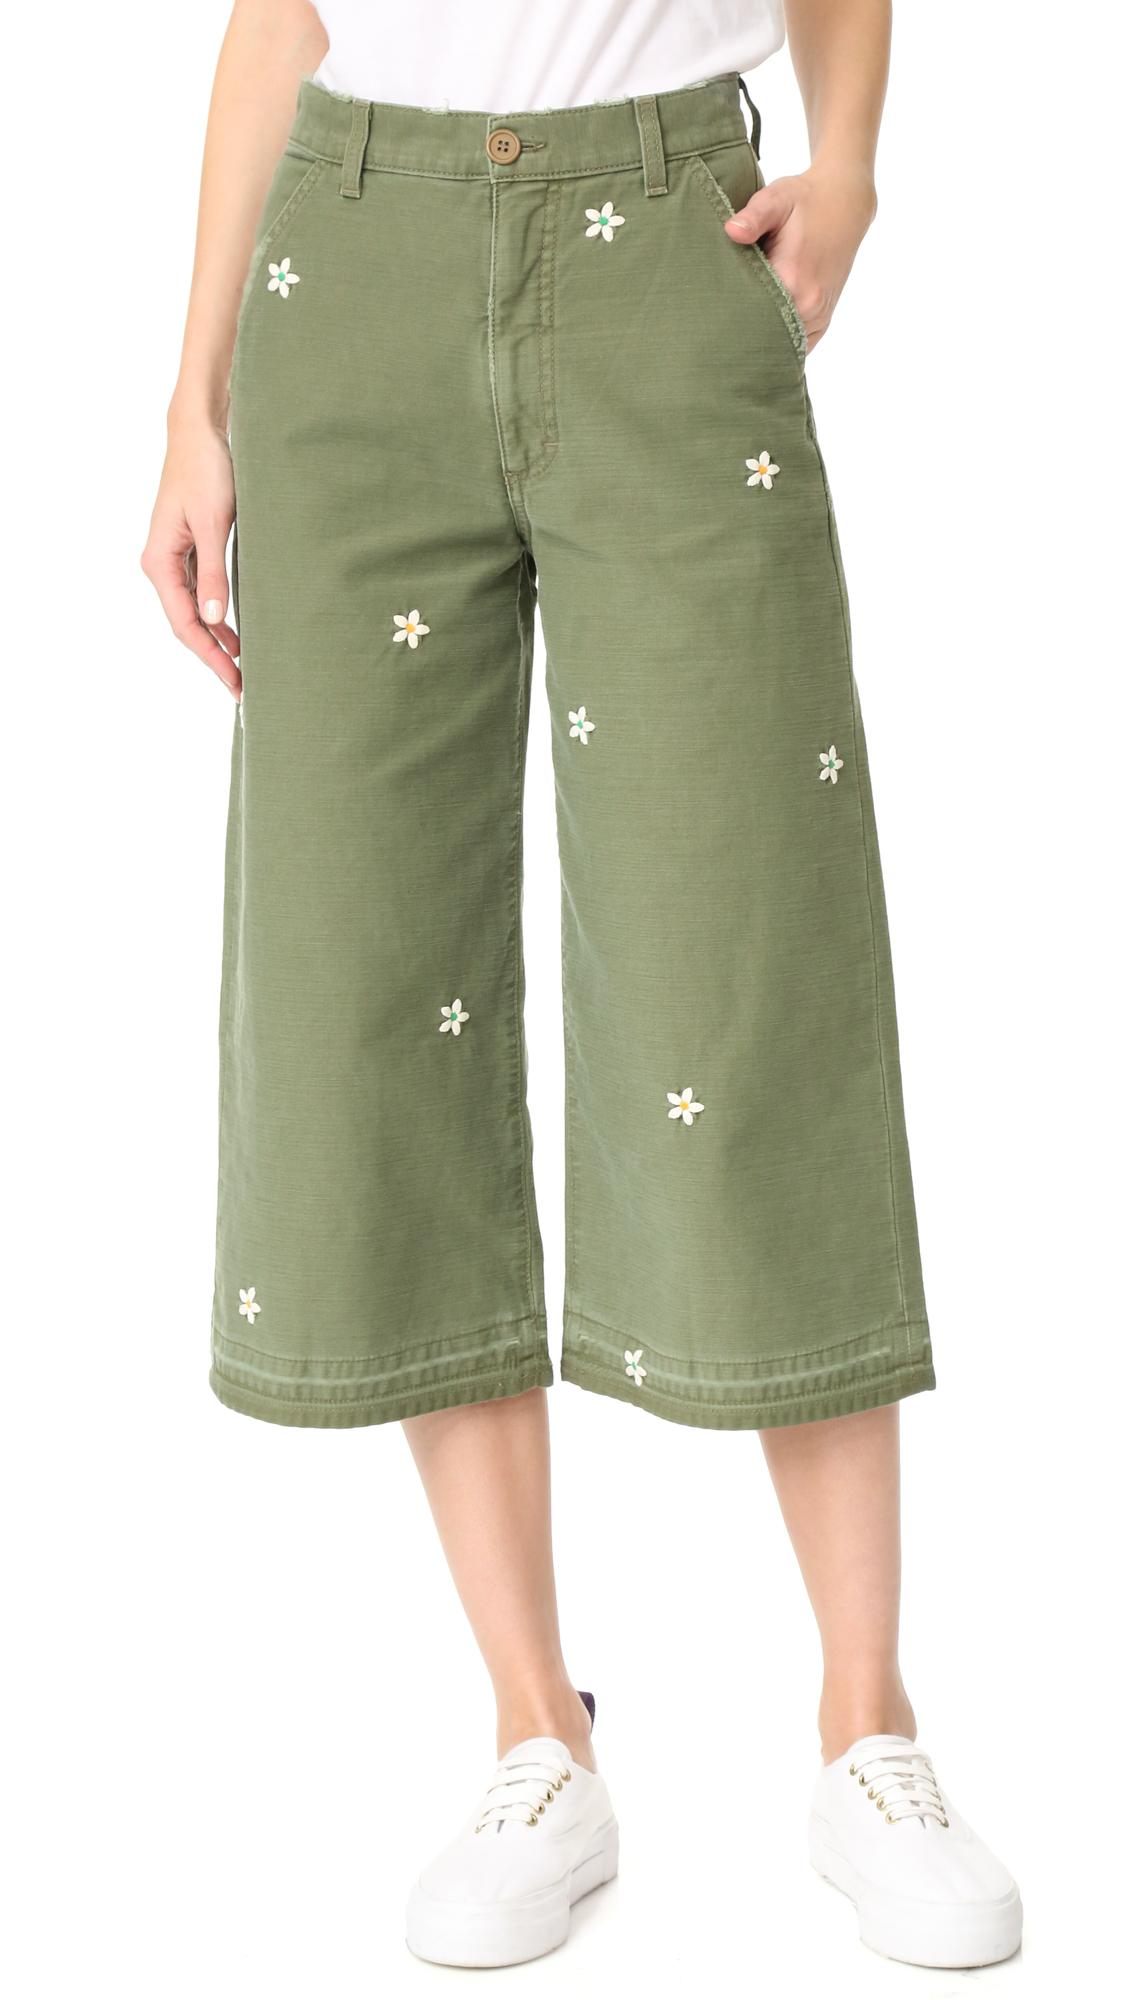 Wonderful Da Nang Womens Cropped Pants Cargo Shorts Capri Casual Walk Multi